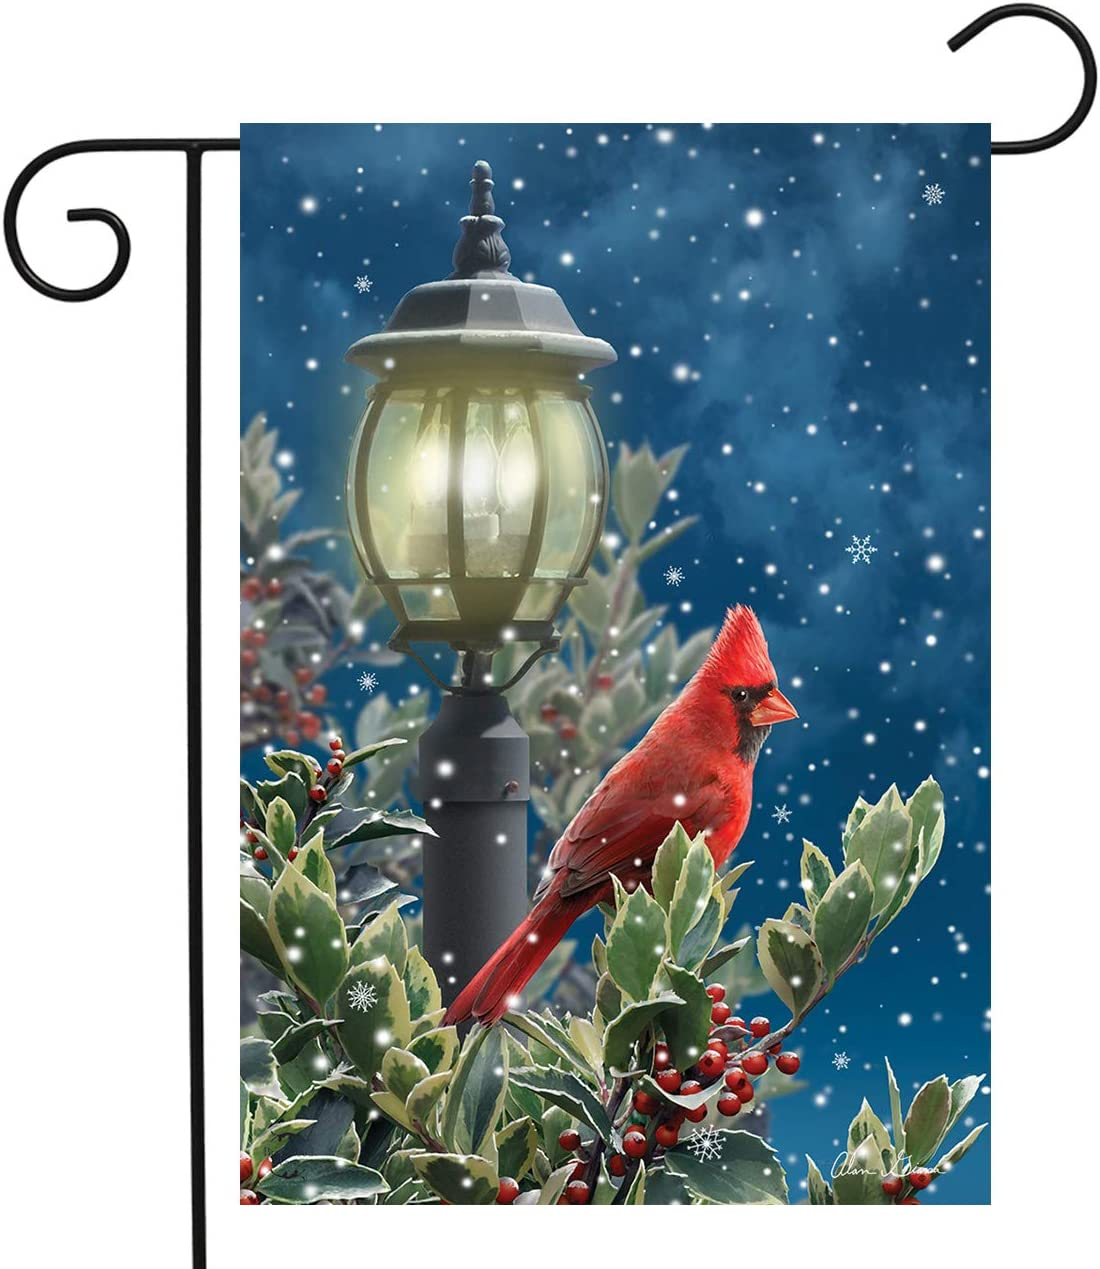 Briarwood Lane Winter Solitude Cardinal Garden Flag Lamp Post Snowy 12.5